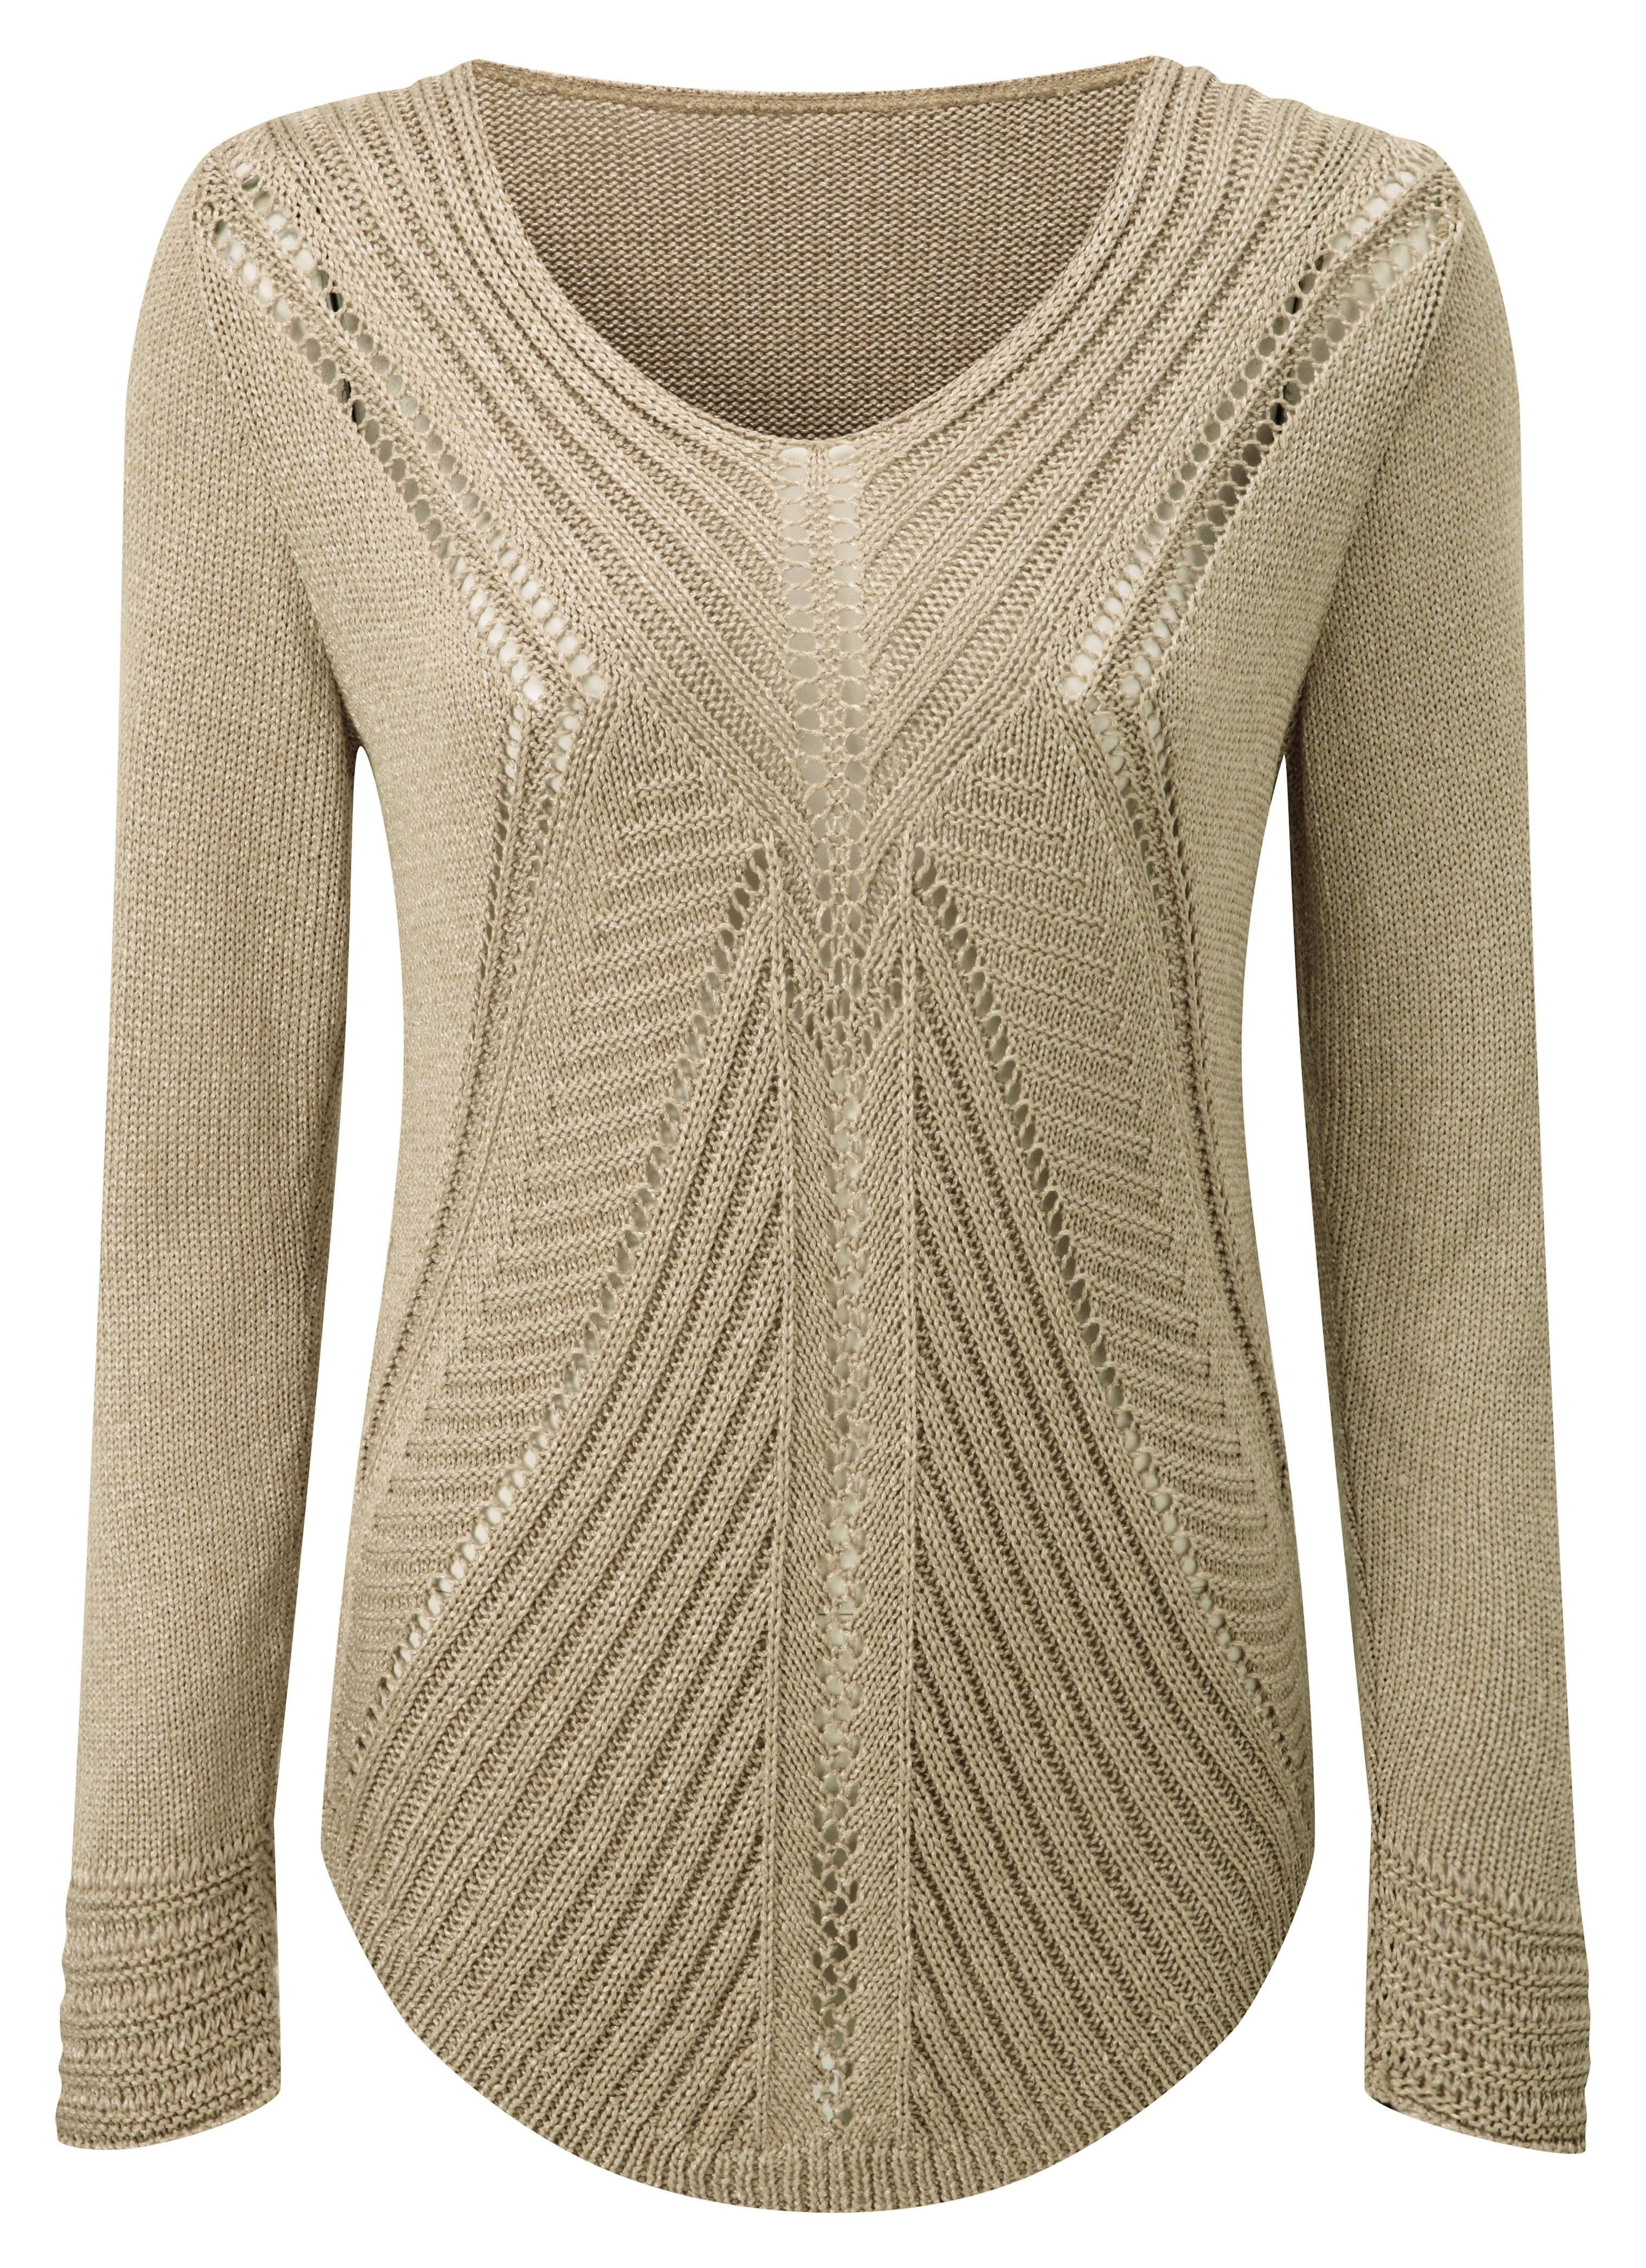 Damart Gold Pointelle Sweater Product Code B675 Www Damart Co Uk Pointelle Sweater Sweaters Gold Sweater